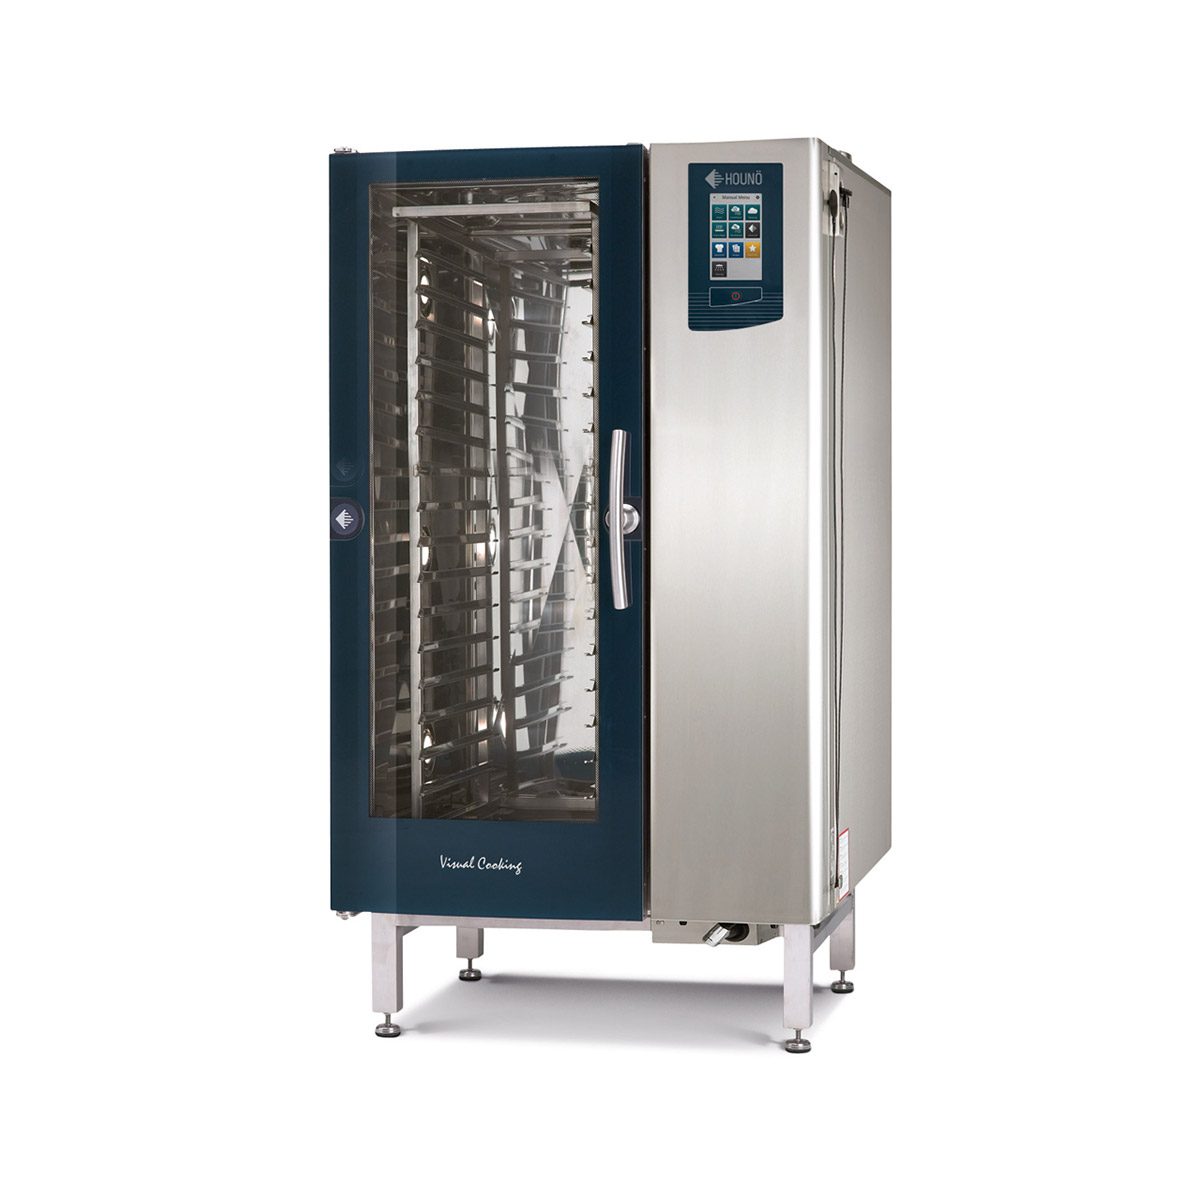 Houno C & CPE 1.16 Roll-In Combi Oven Electric 16 Tray Oven – 4 Year Warranty